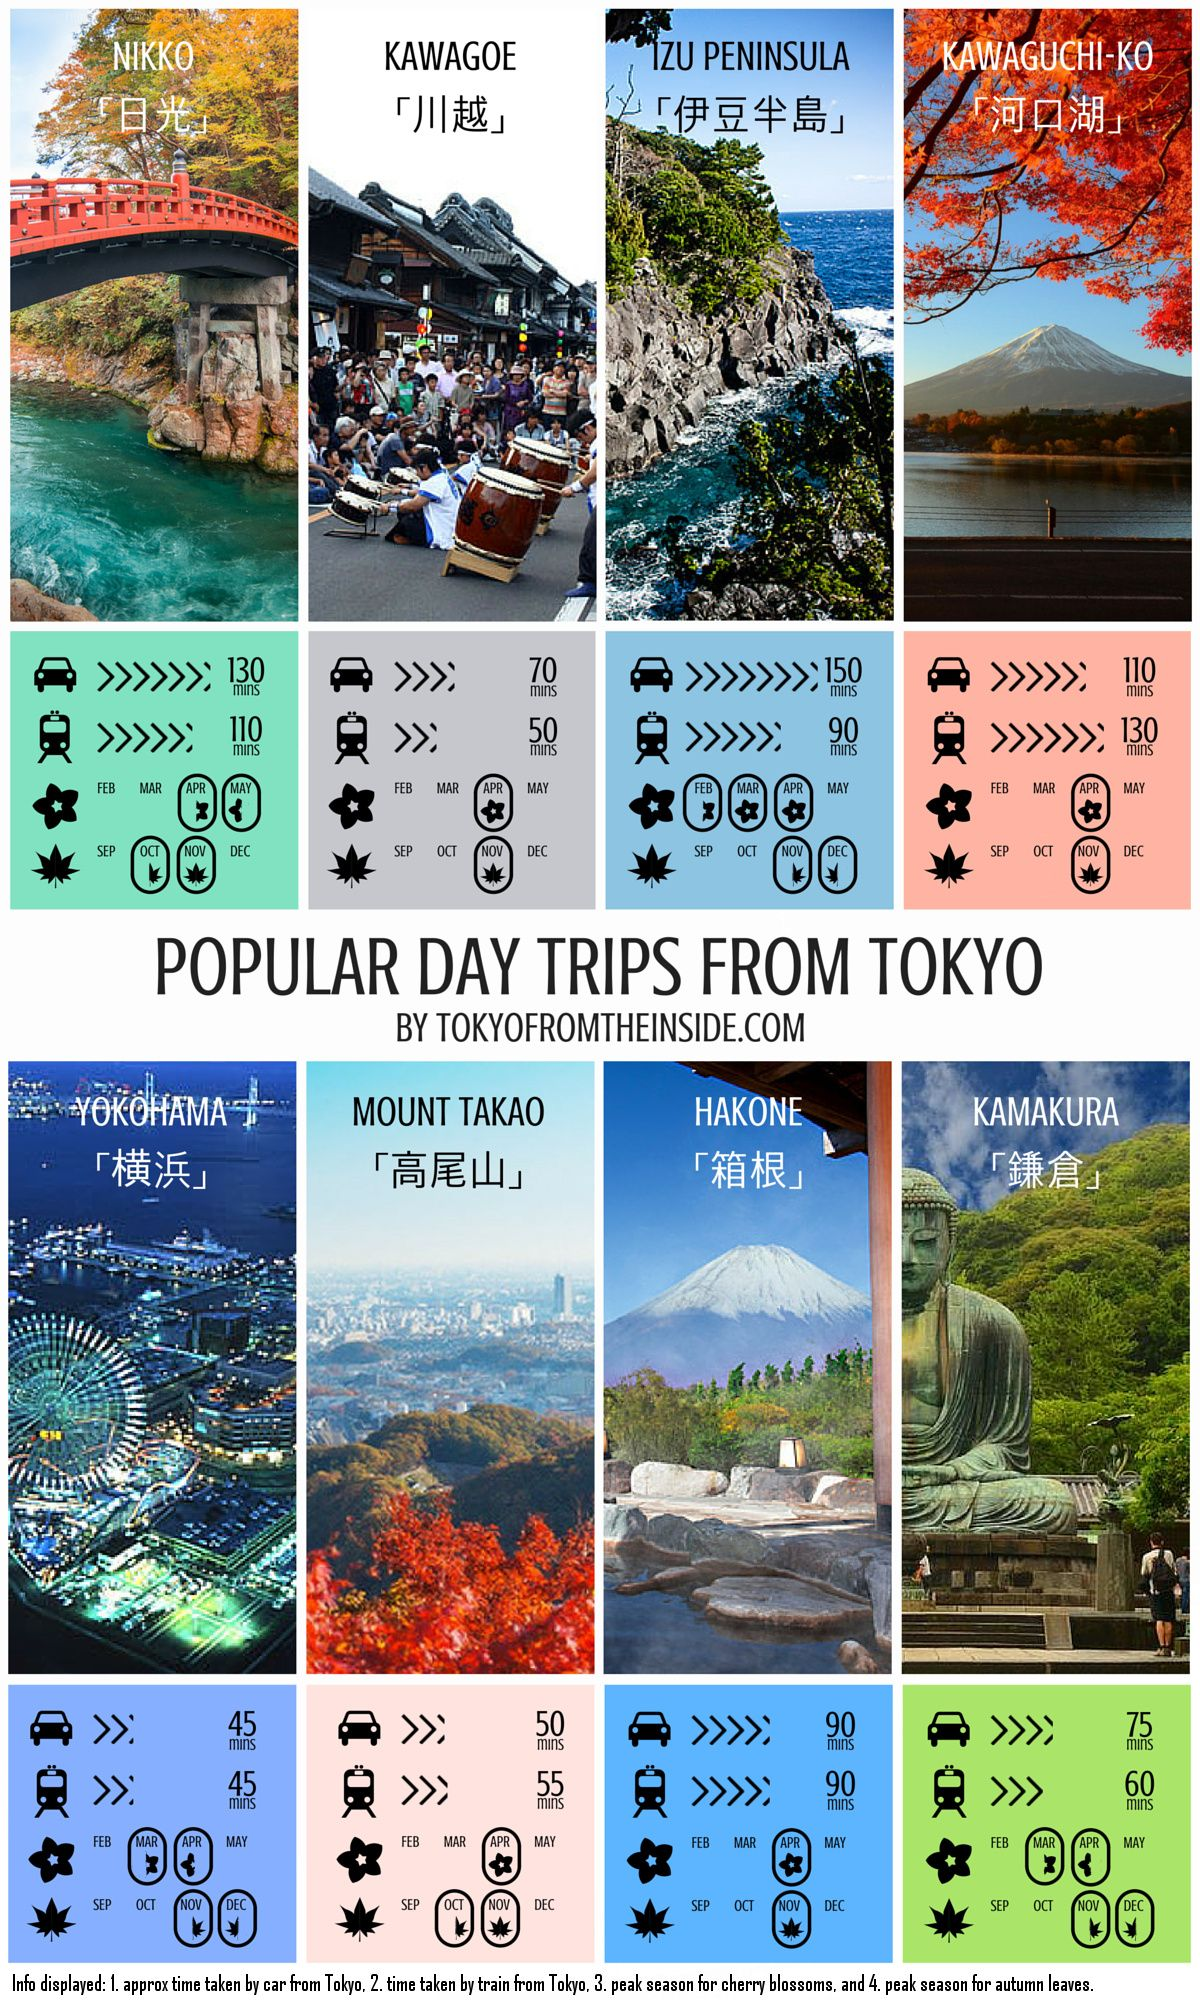 Popular day trips from Tokyo in a nutshell